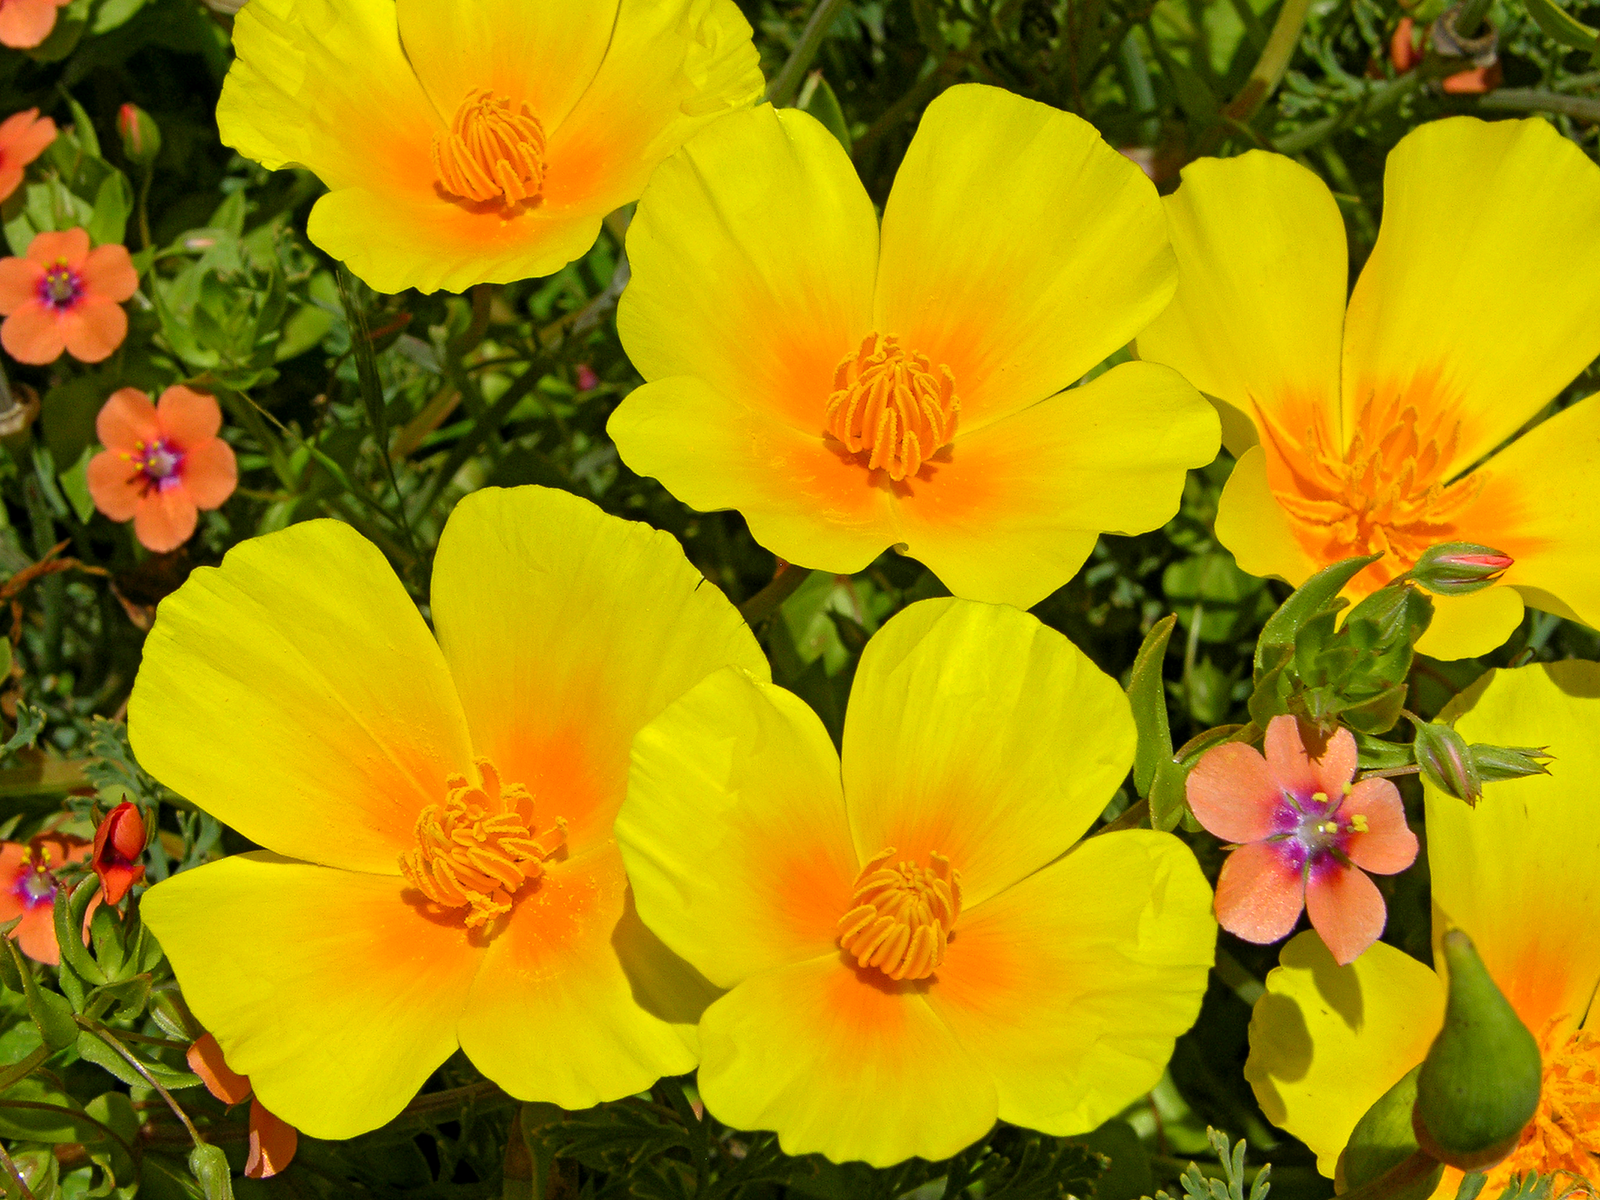 California Poppies on the central coast, and little Scarlet Pimpernels. Photo by John Gibson.